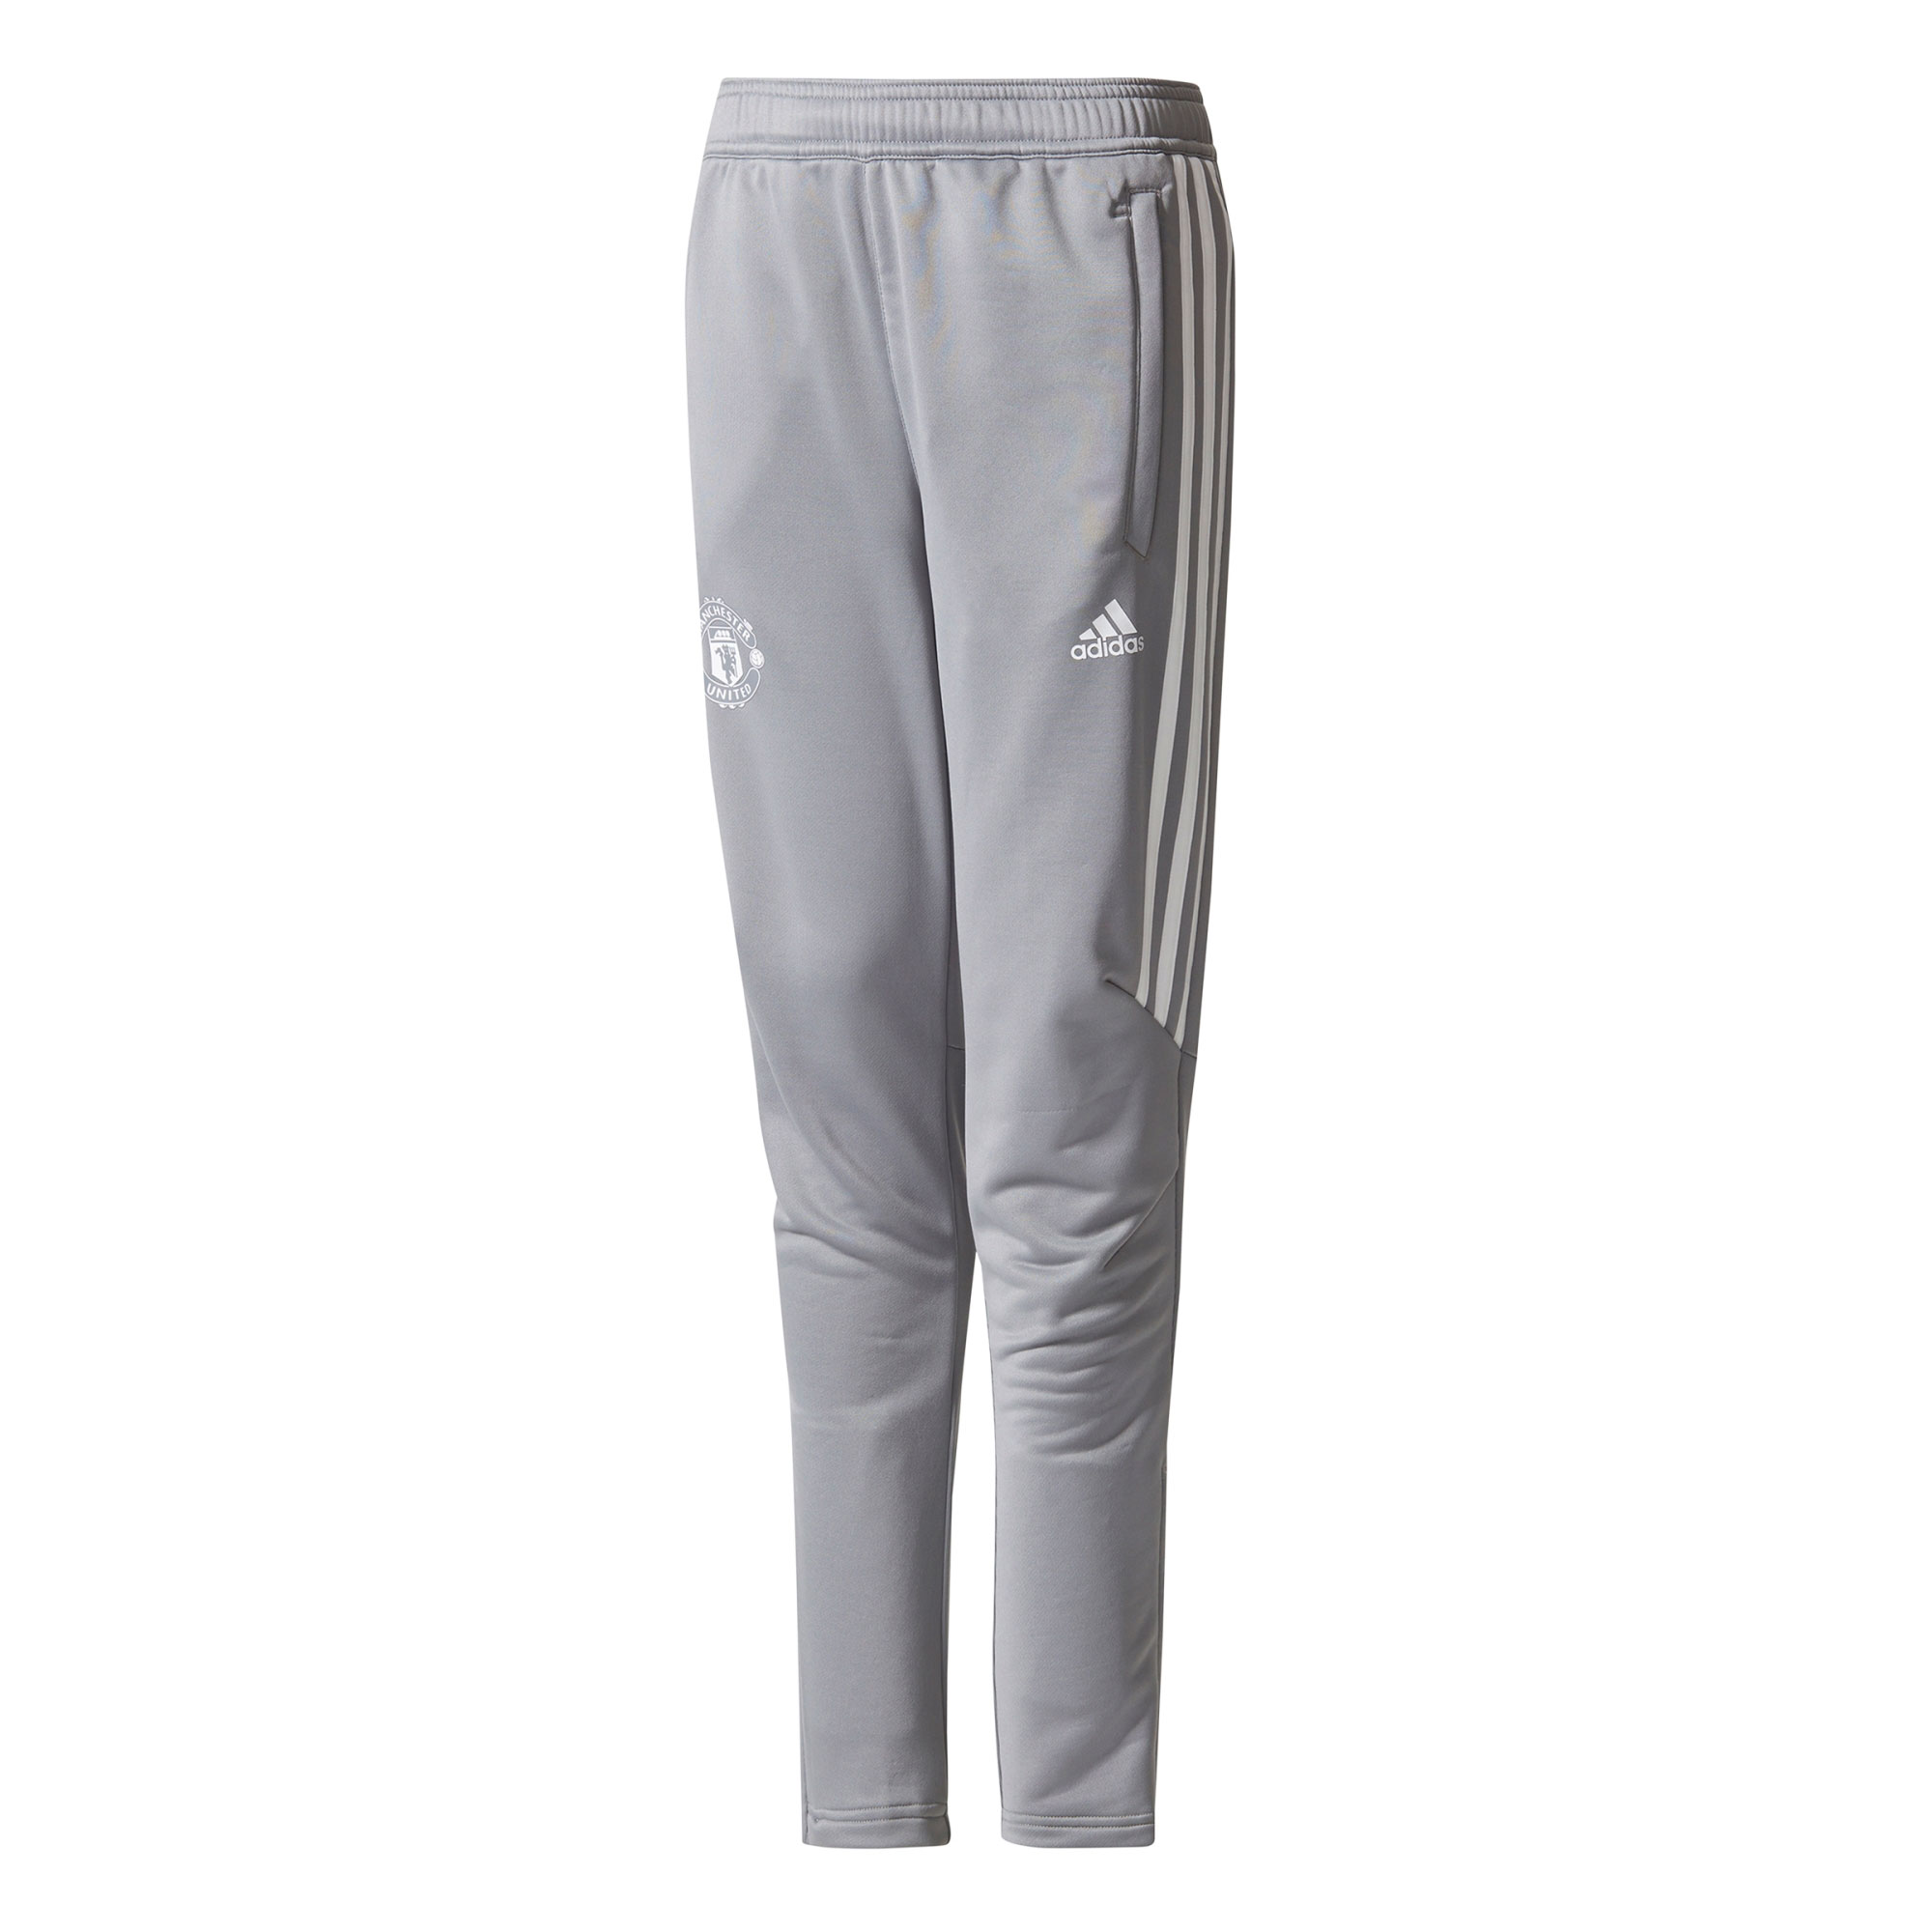 Manchester United Training Pant - Grey - Kids